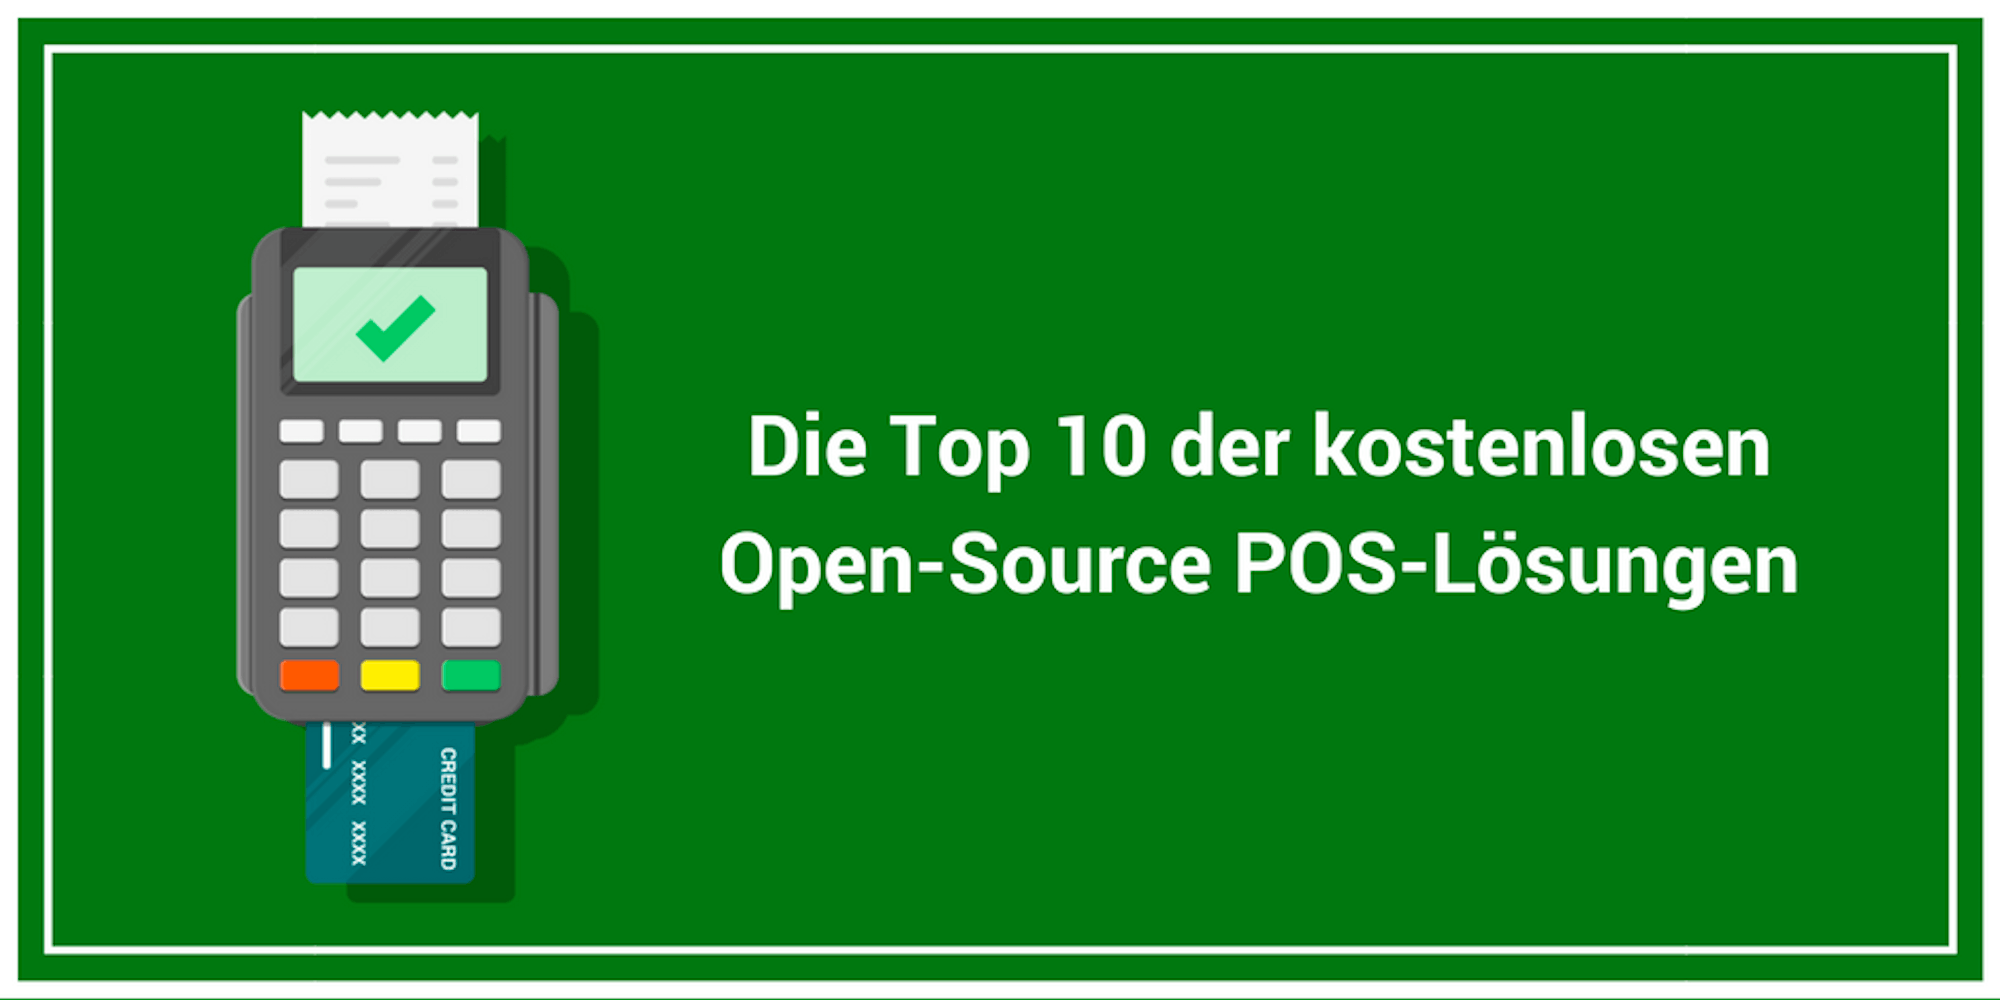 Top kostenlosen und Open-Source POS Software